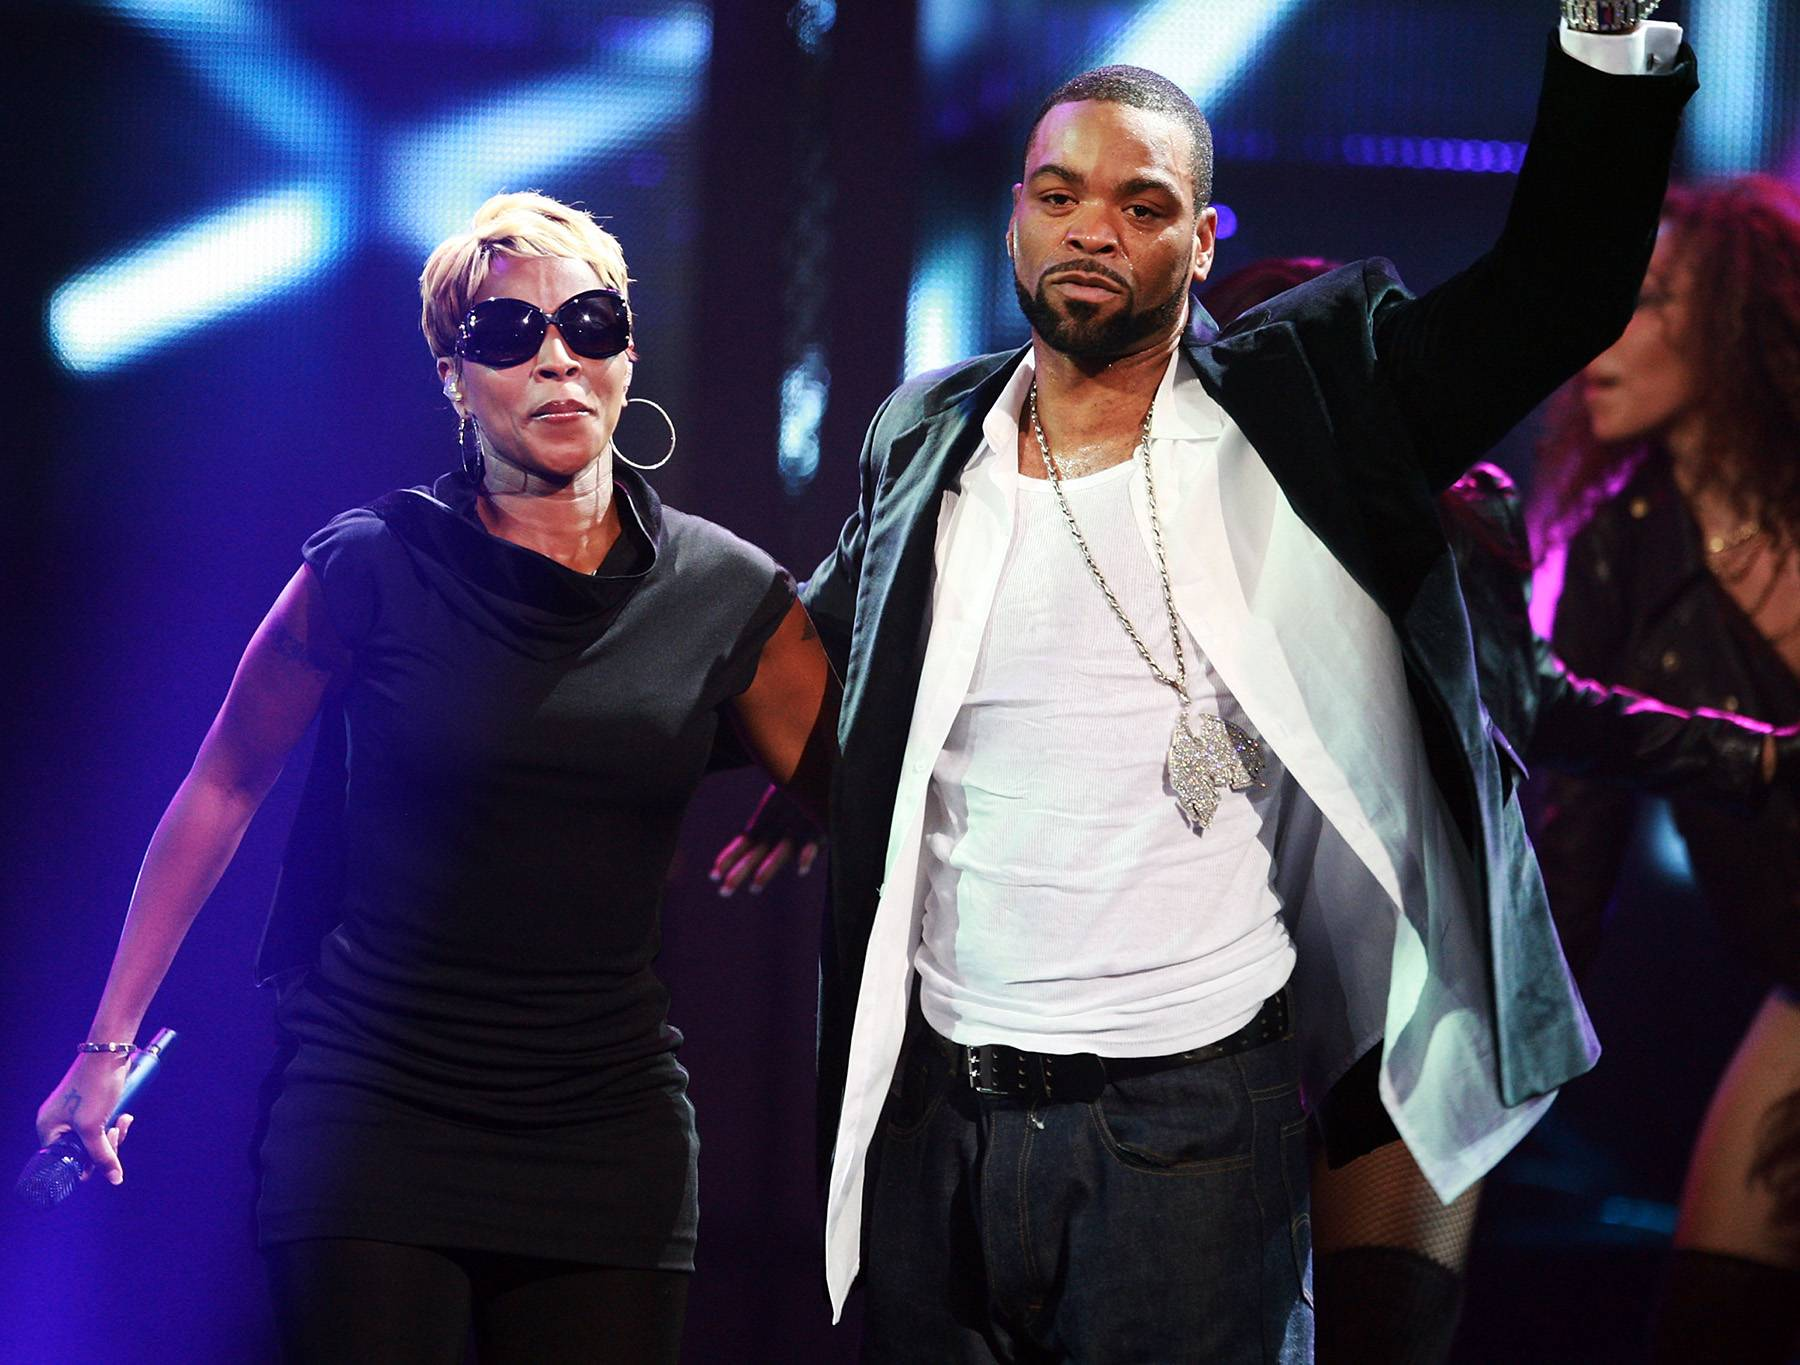 """Mary J. and Method Man - Mary J. Blige and Method Man's """"I'll Be There for You/You're All I Need to Get By"""" took the concept of the hip hop ballad over the top. It's still regarded as one of the most classic hip hop songs of all time.   (Photo: Stephen Lovekin/Getty Images)"""